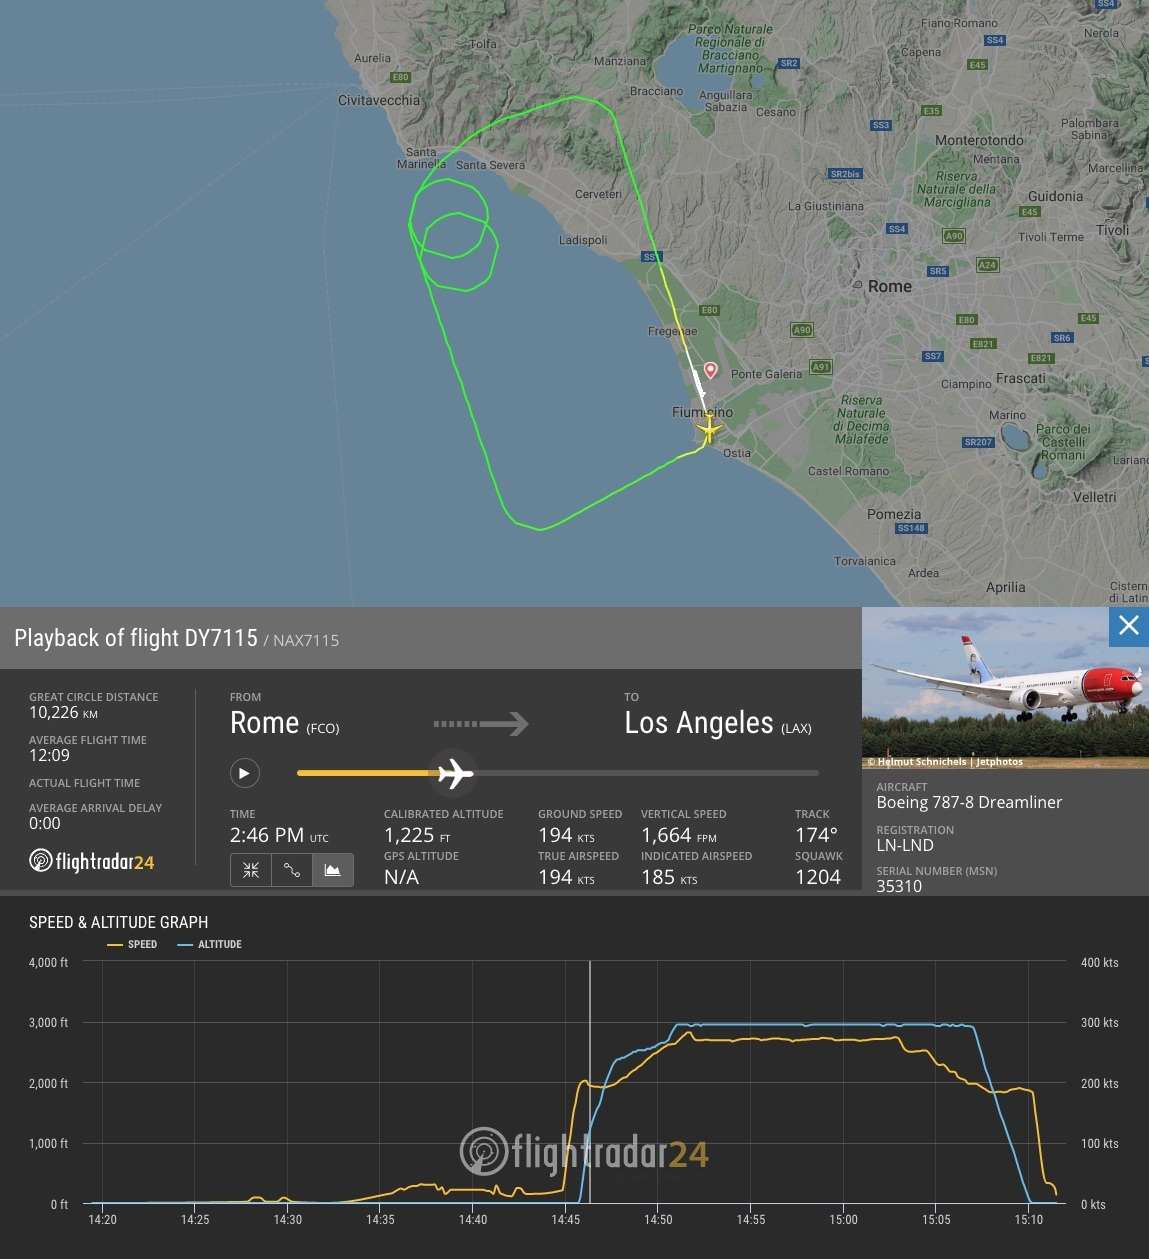 Norwegian 787 LN-LND flight path over Rome